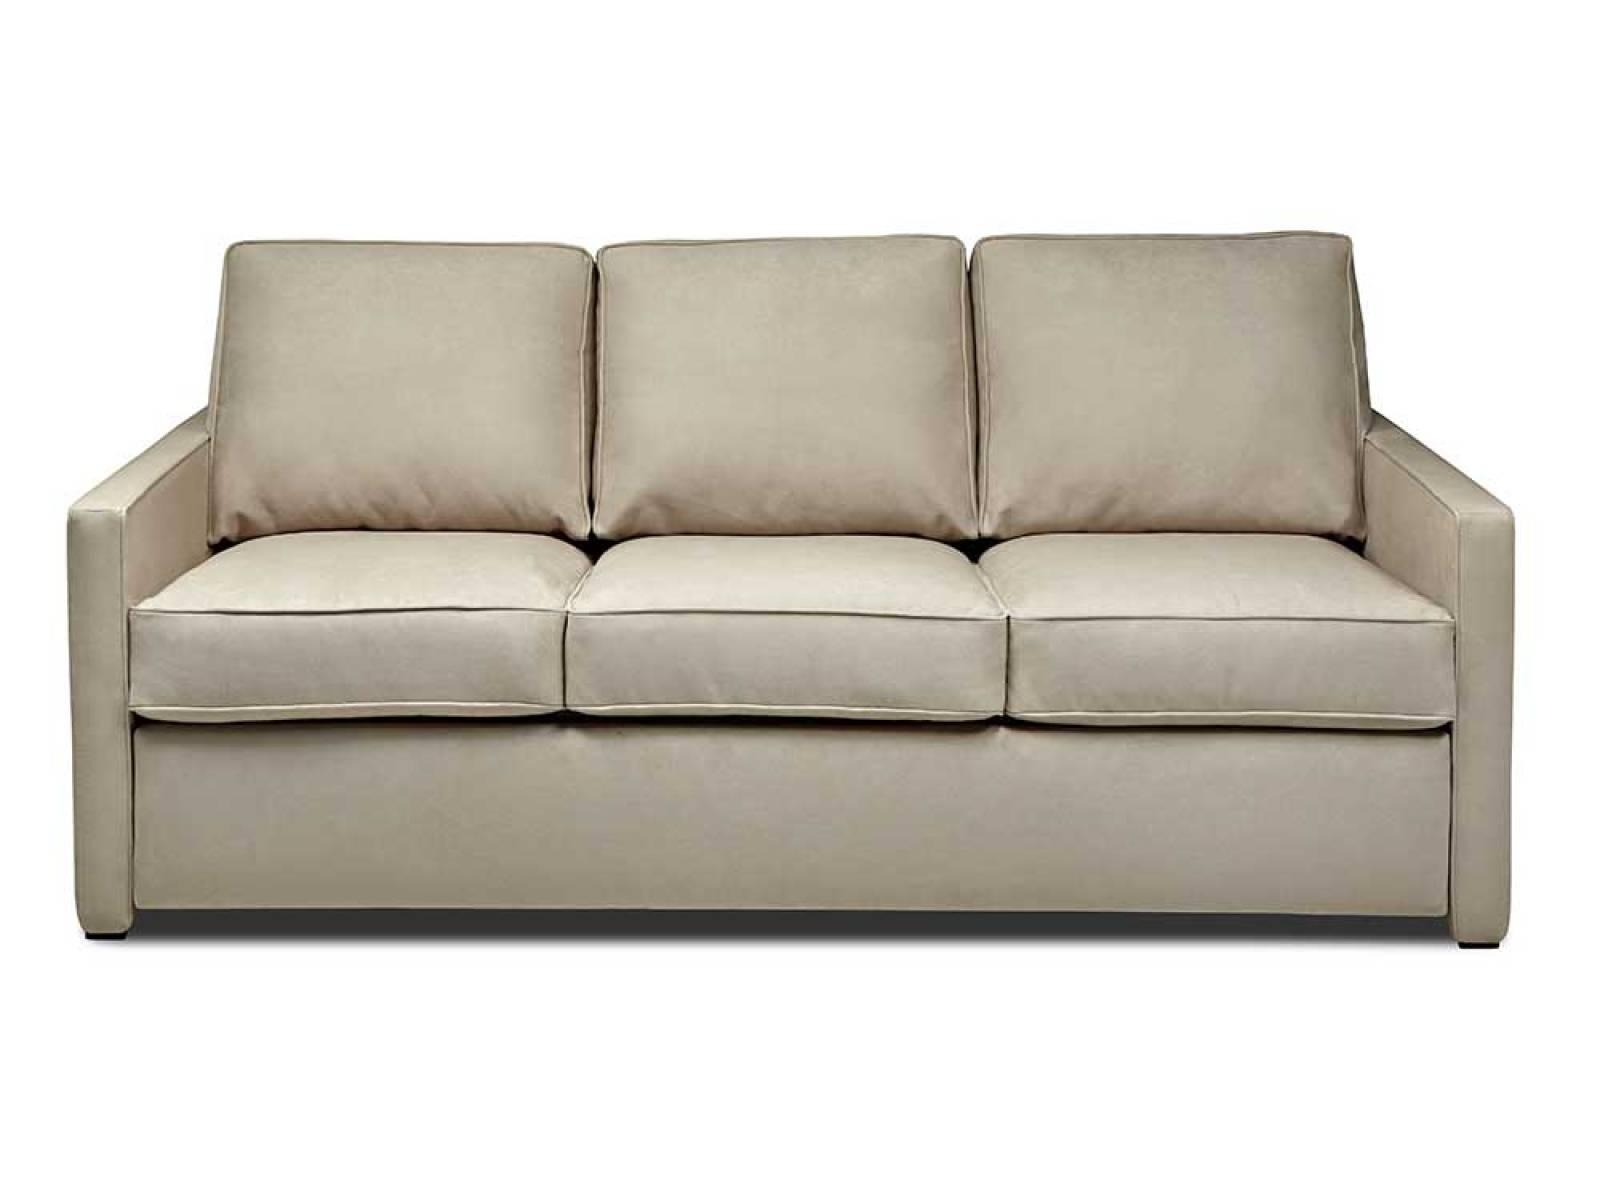 ▻ Sofa : 16 Scenic Lovely Round Sofa Able Transform Big Rounded Within Rounded Sofa (View 18 of 20)